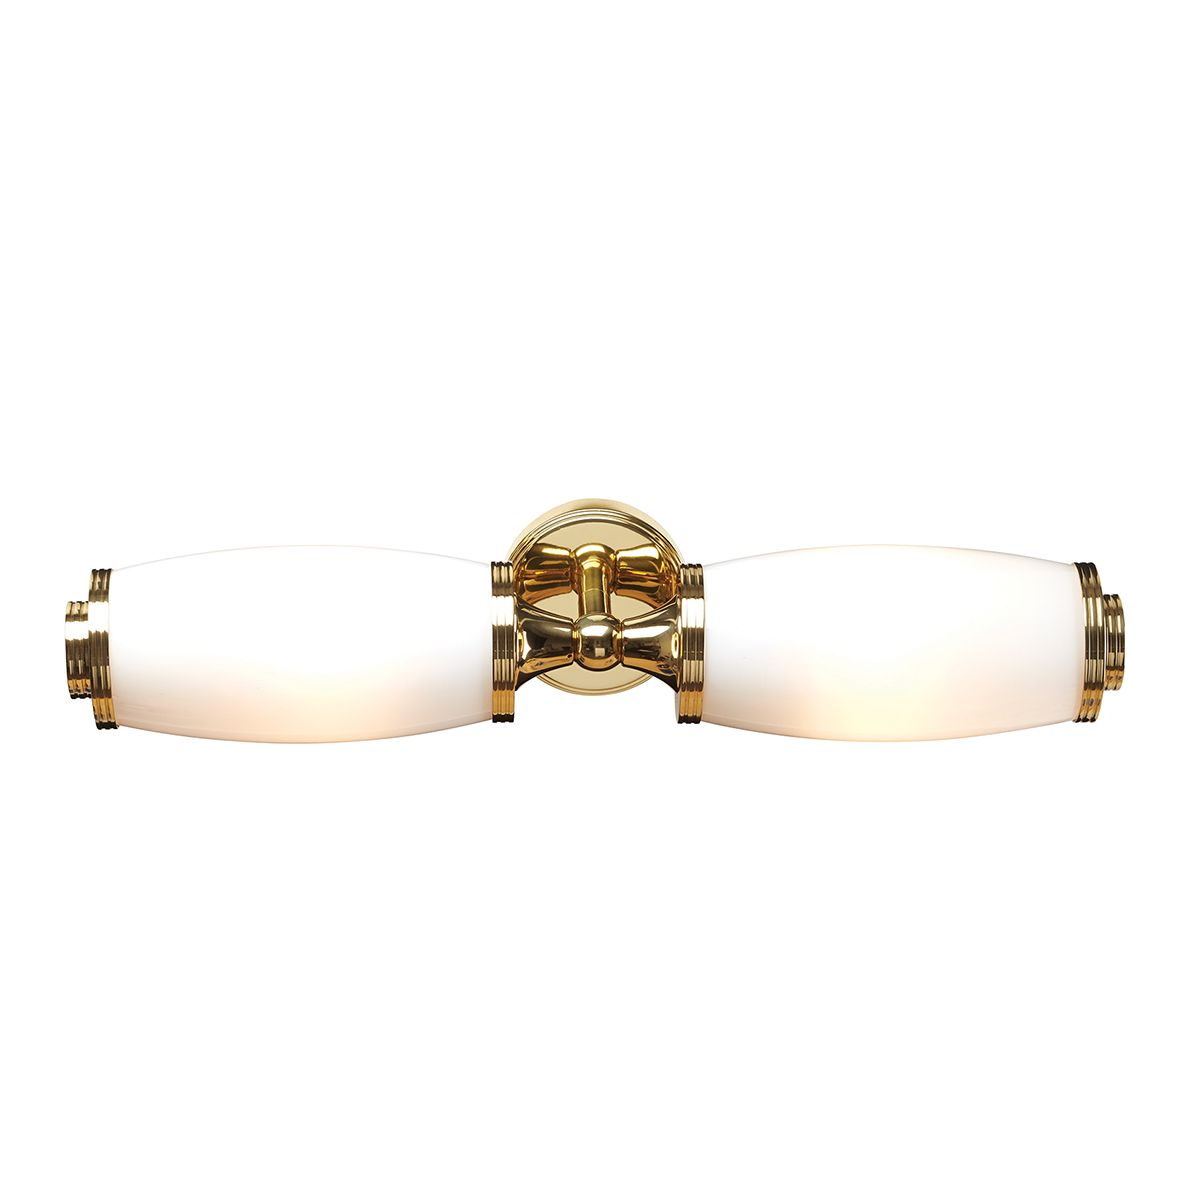 Eliot 2 double brass single bathroom mirror wall light in for Bathroom light fixtures brass finish